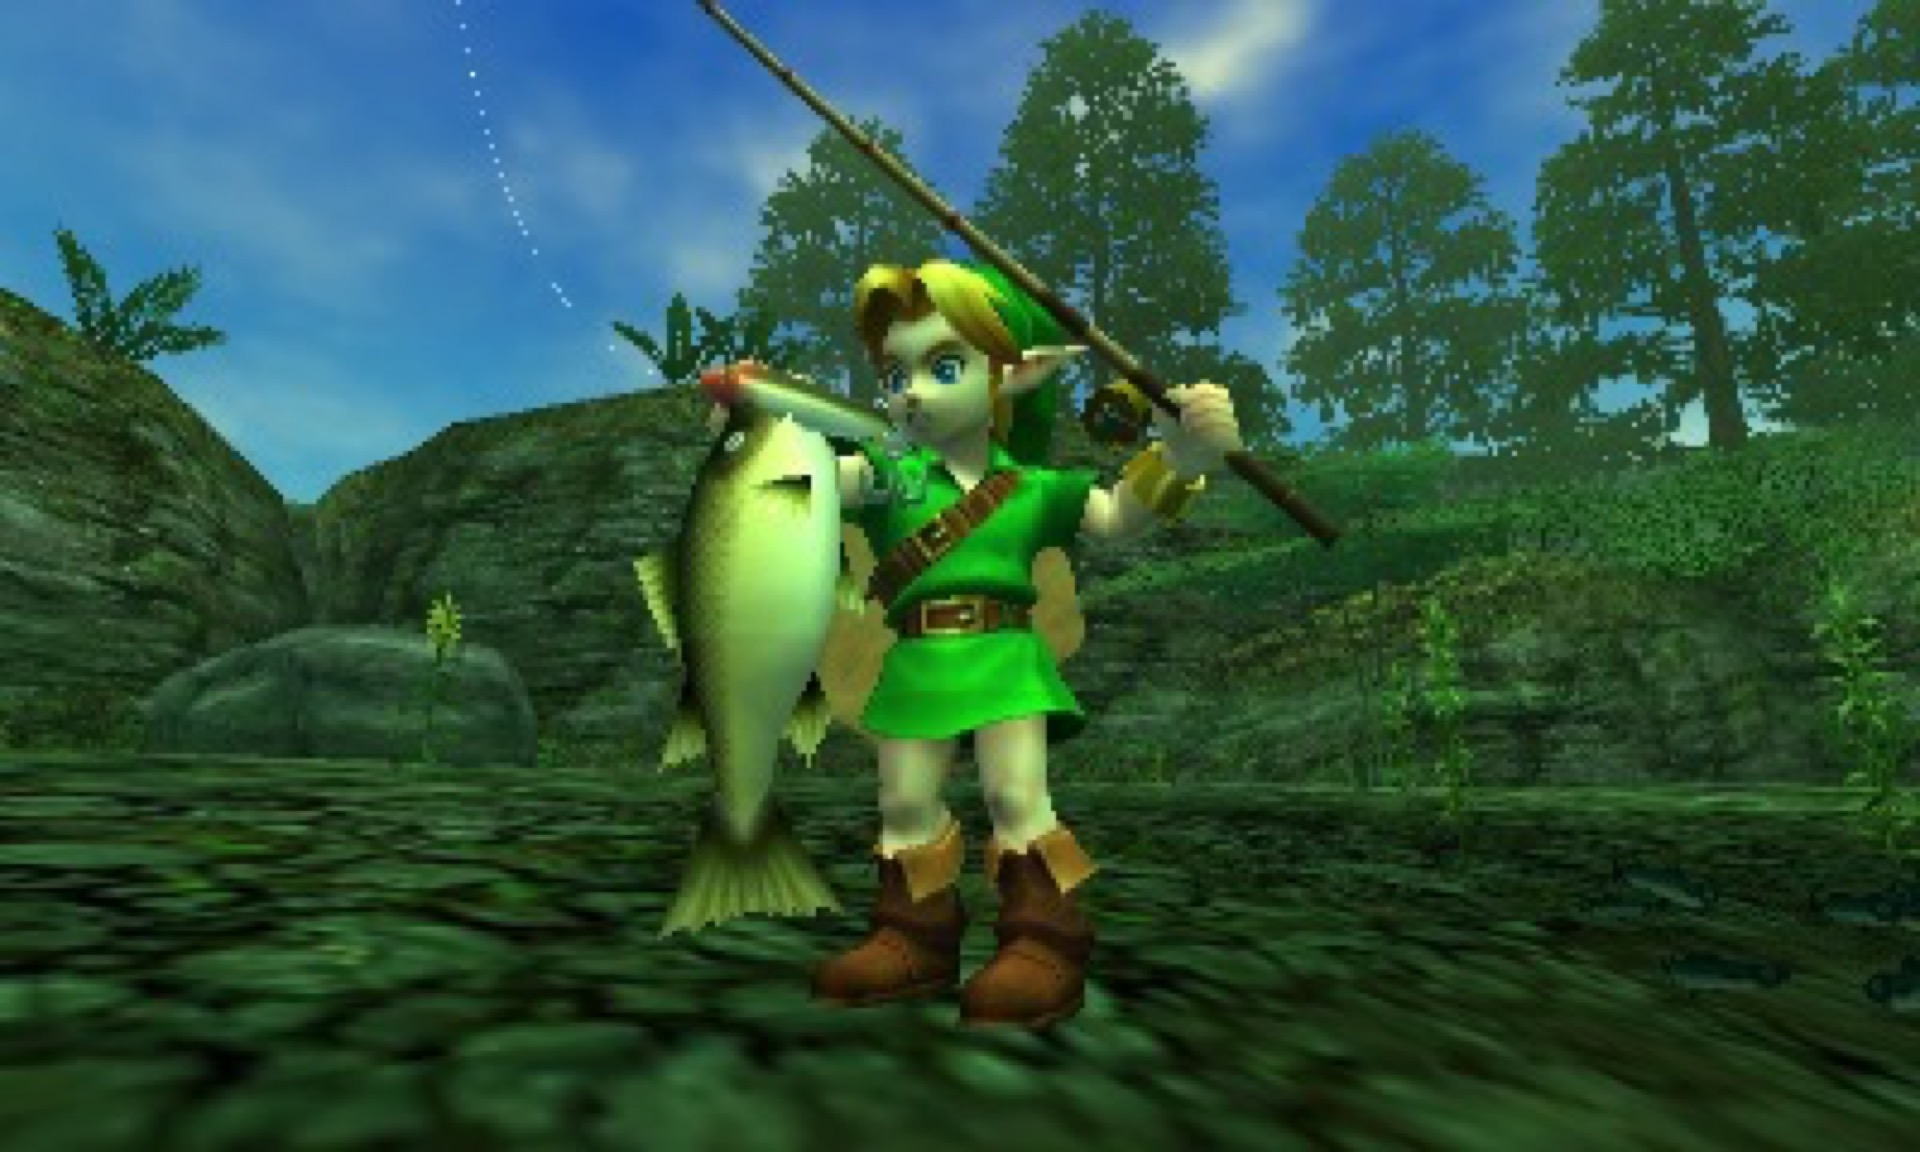 Zelda: Ocarina of Time's Hyrule Field changed how we think